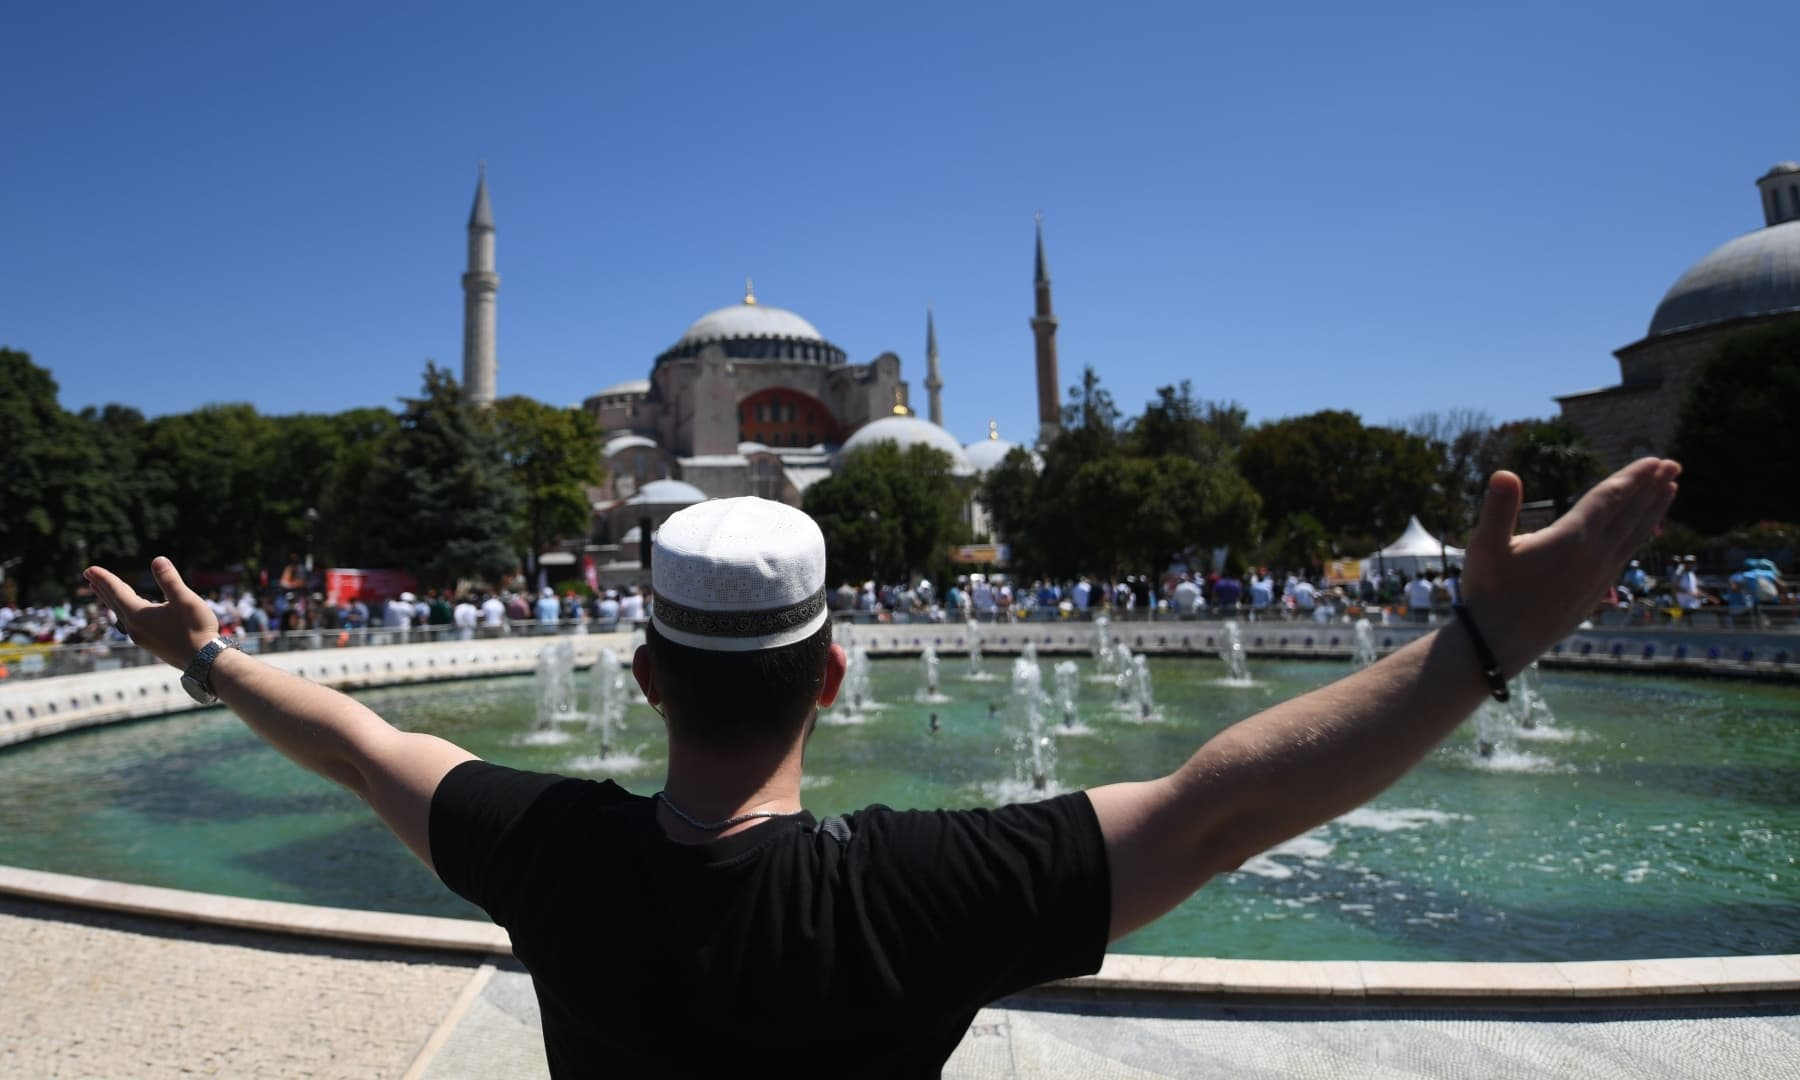 A man raises his arms as people gather outside Hagia Sophia in Istanbul to attend the Friday prayer. — AFP